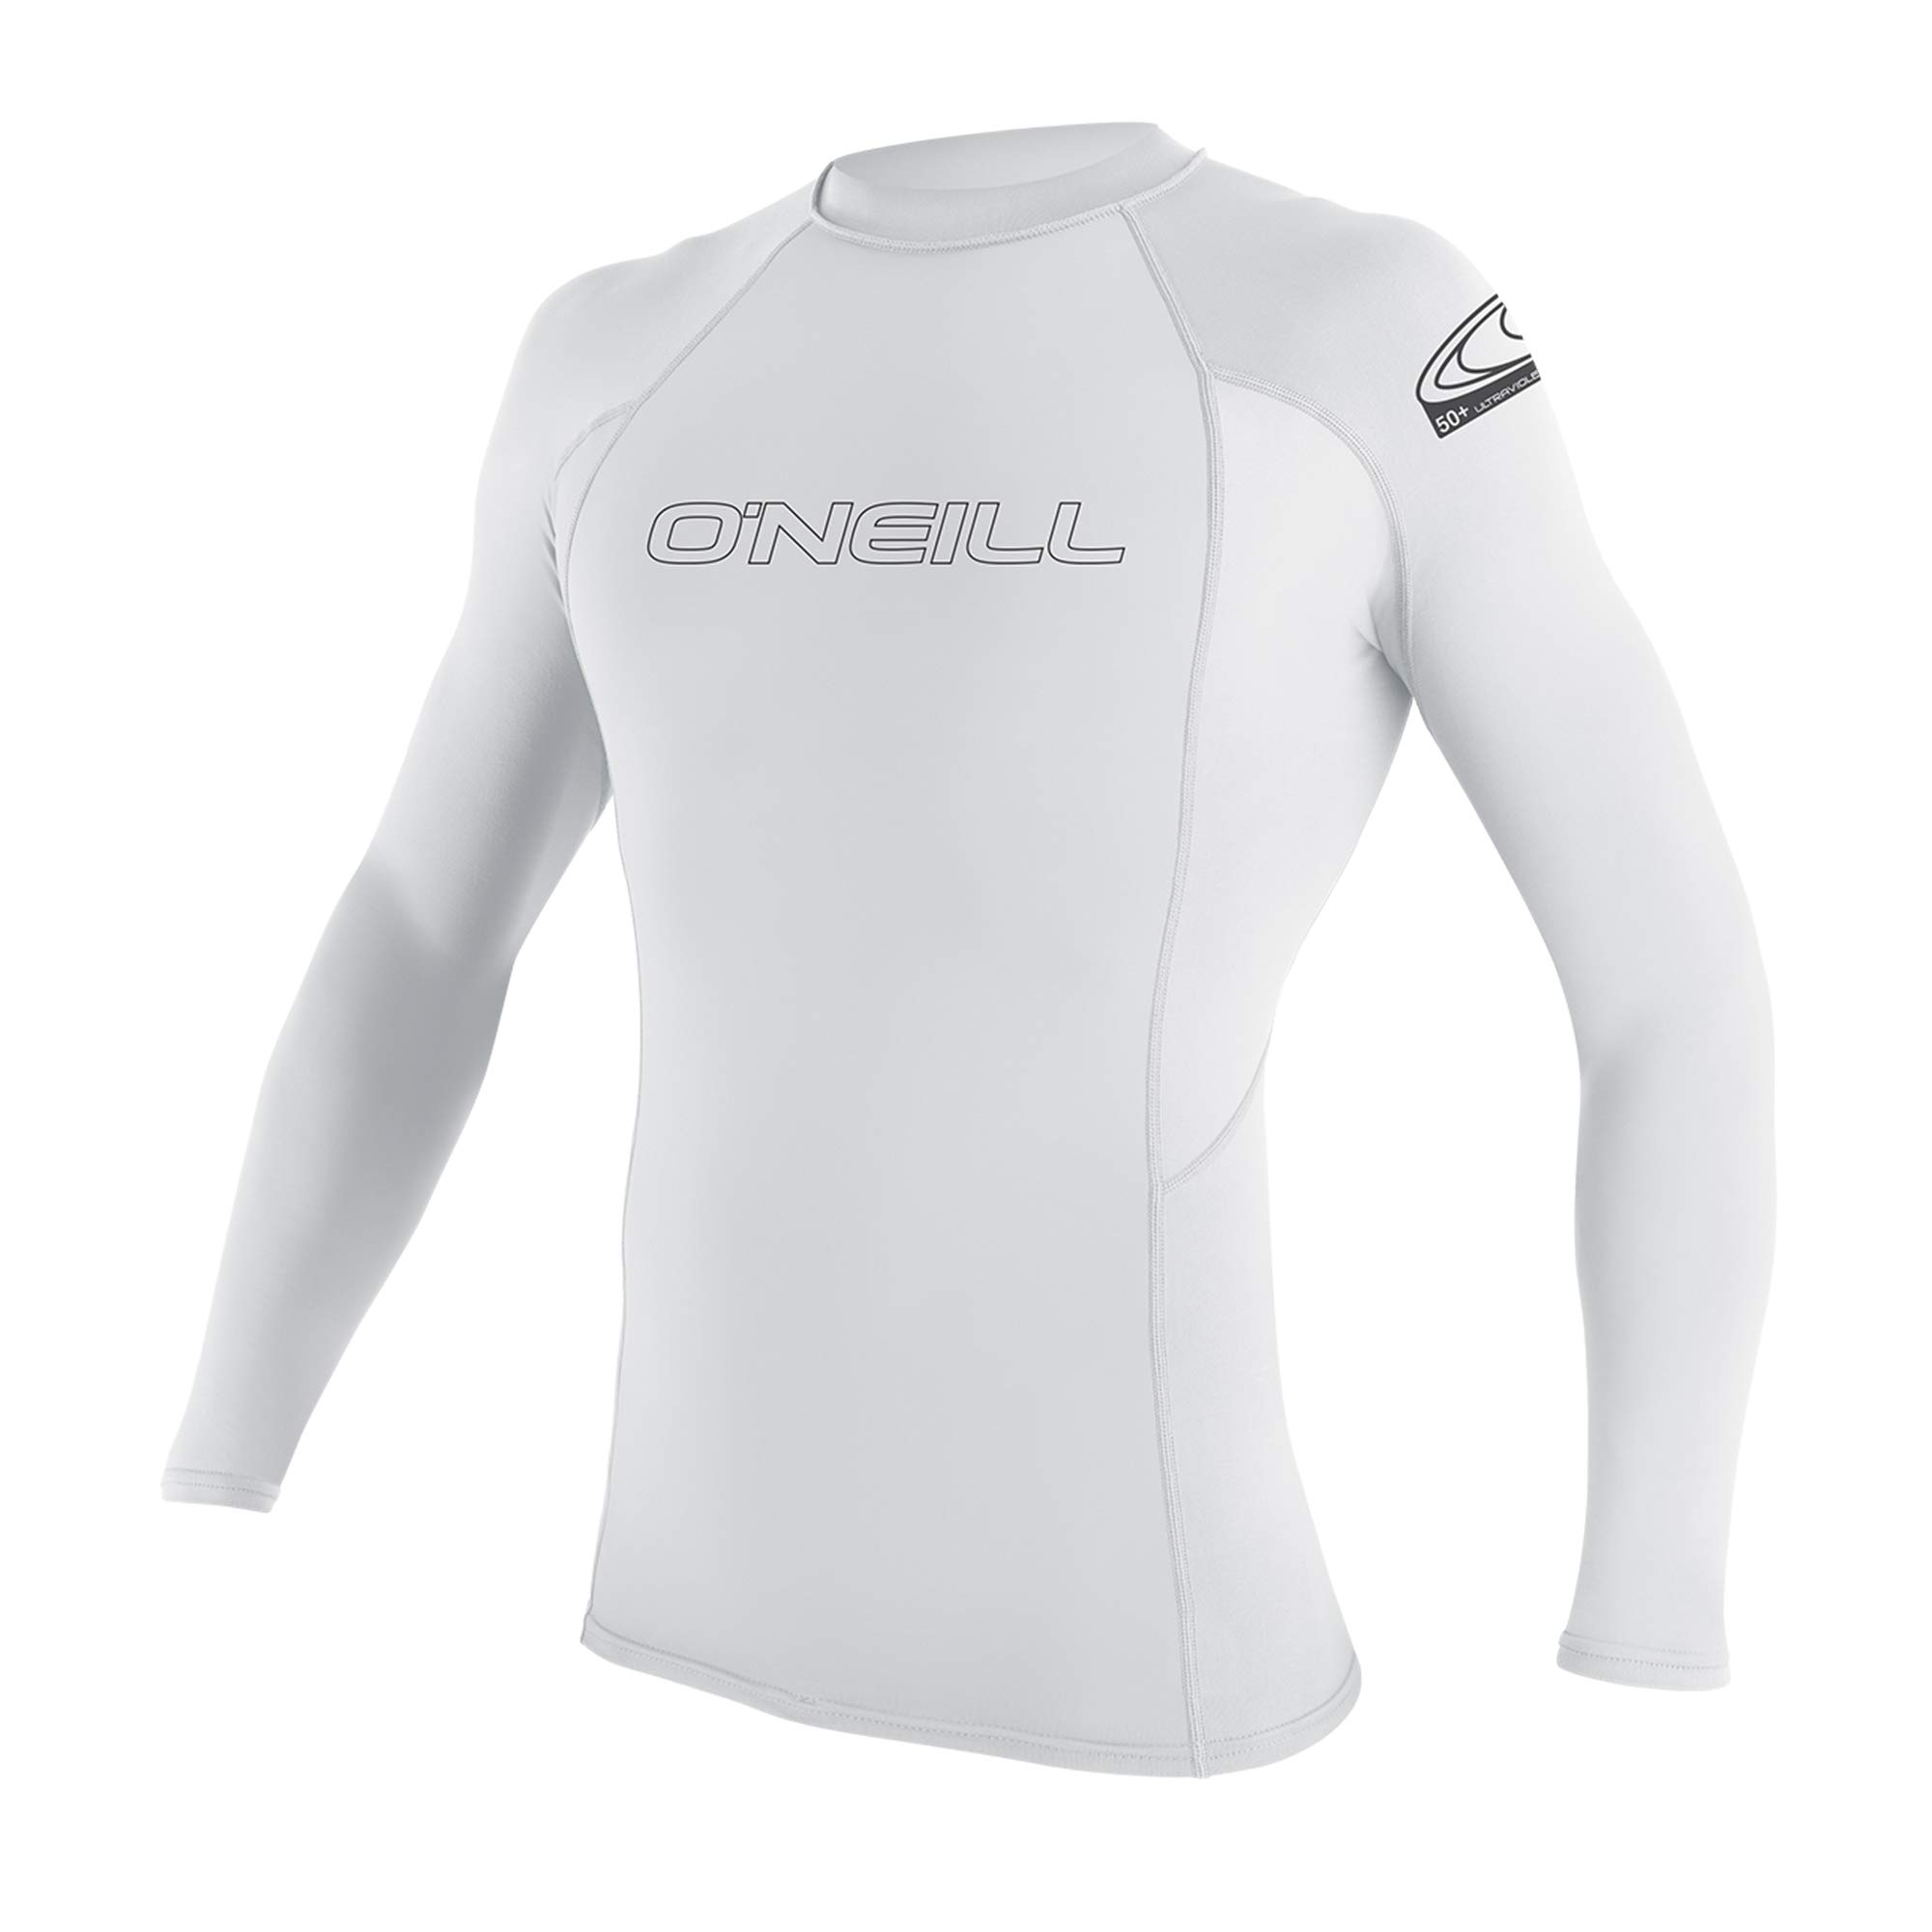 O'Neill Youth Basic Skins UPF 50+ Long Sleeve Rash Guard, White, 14 by O'Neill Wetsuits